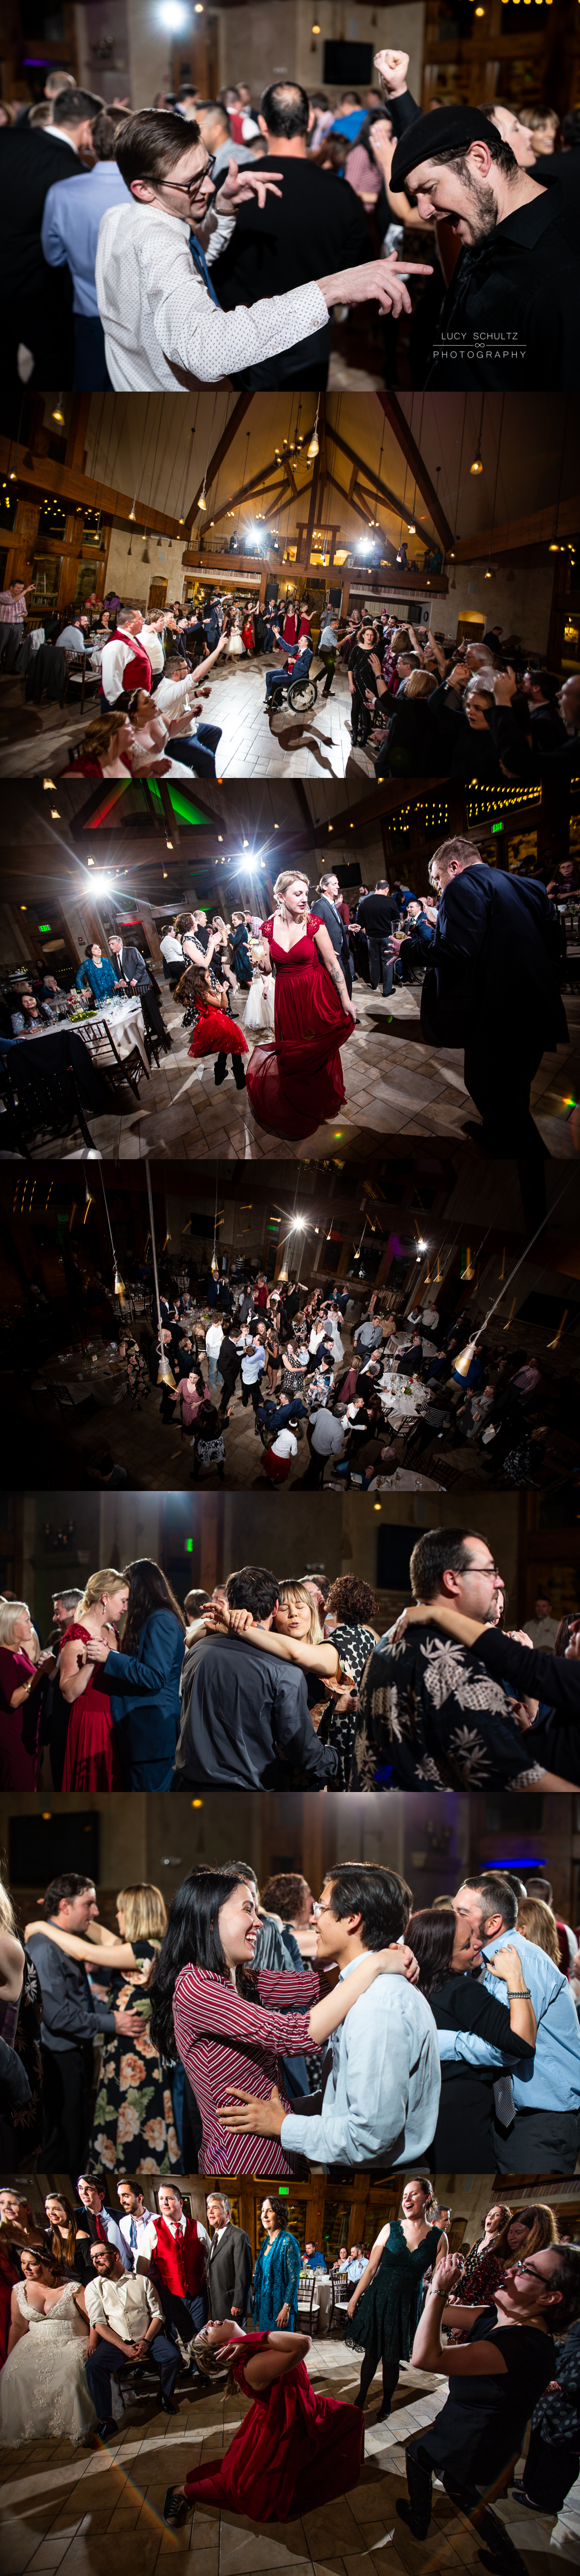 27ColoradosBestWeddingPhotographerWeddingReceptionParty